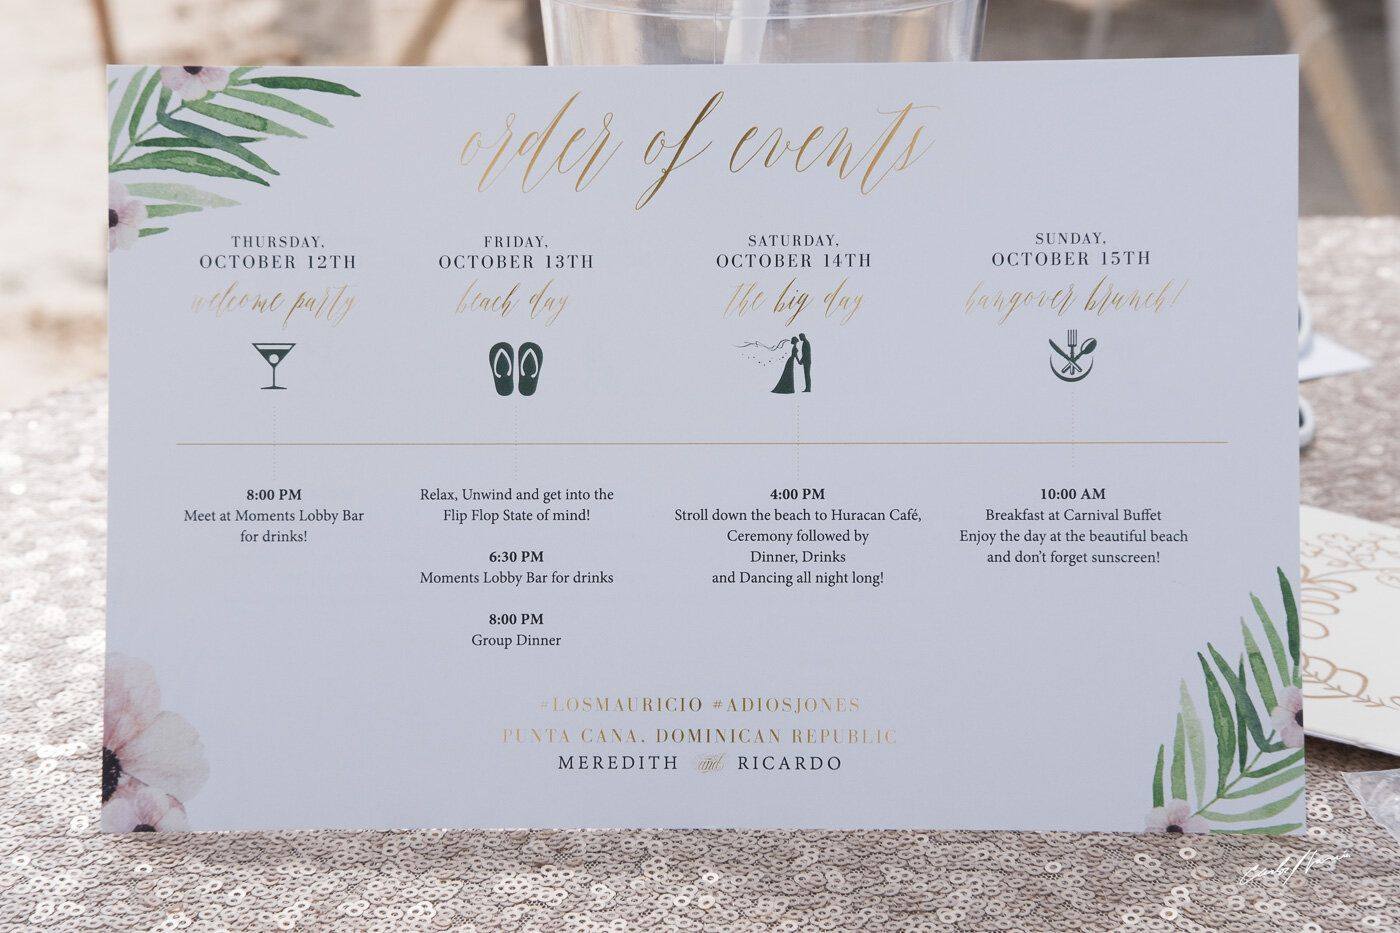 009 Imposing Destination Wedding Welcome Letter Template Design  And ItineraryFull